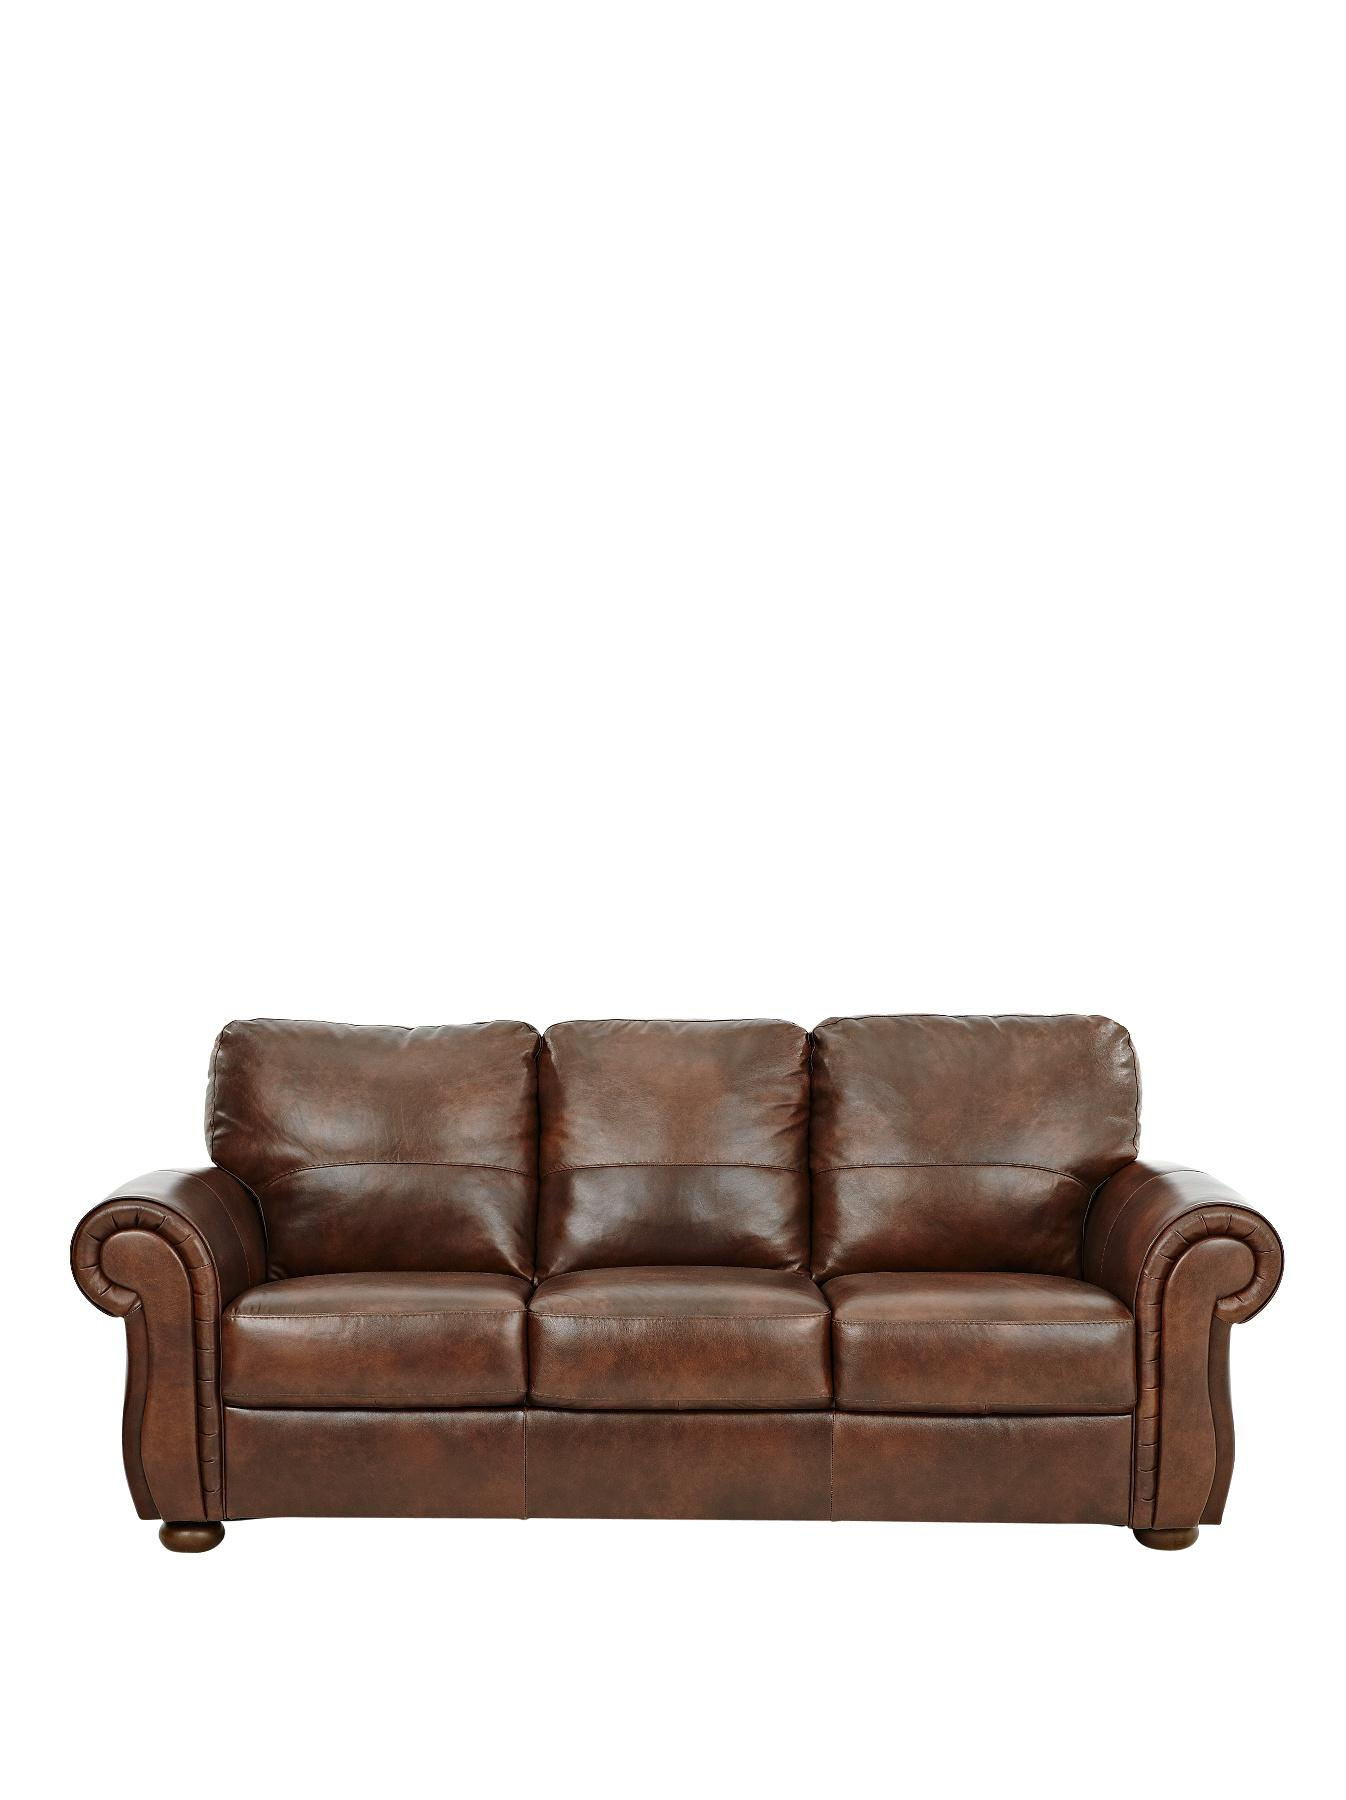 Cassina 3-Seater Italian Leather Sofa, Brown,Tan